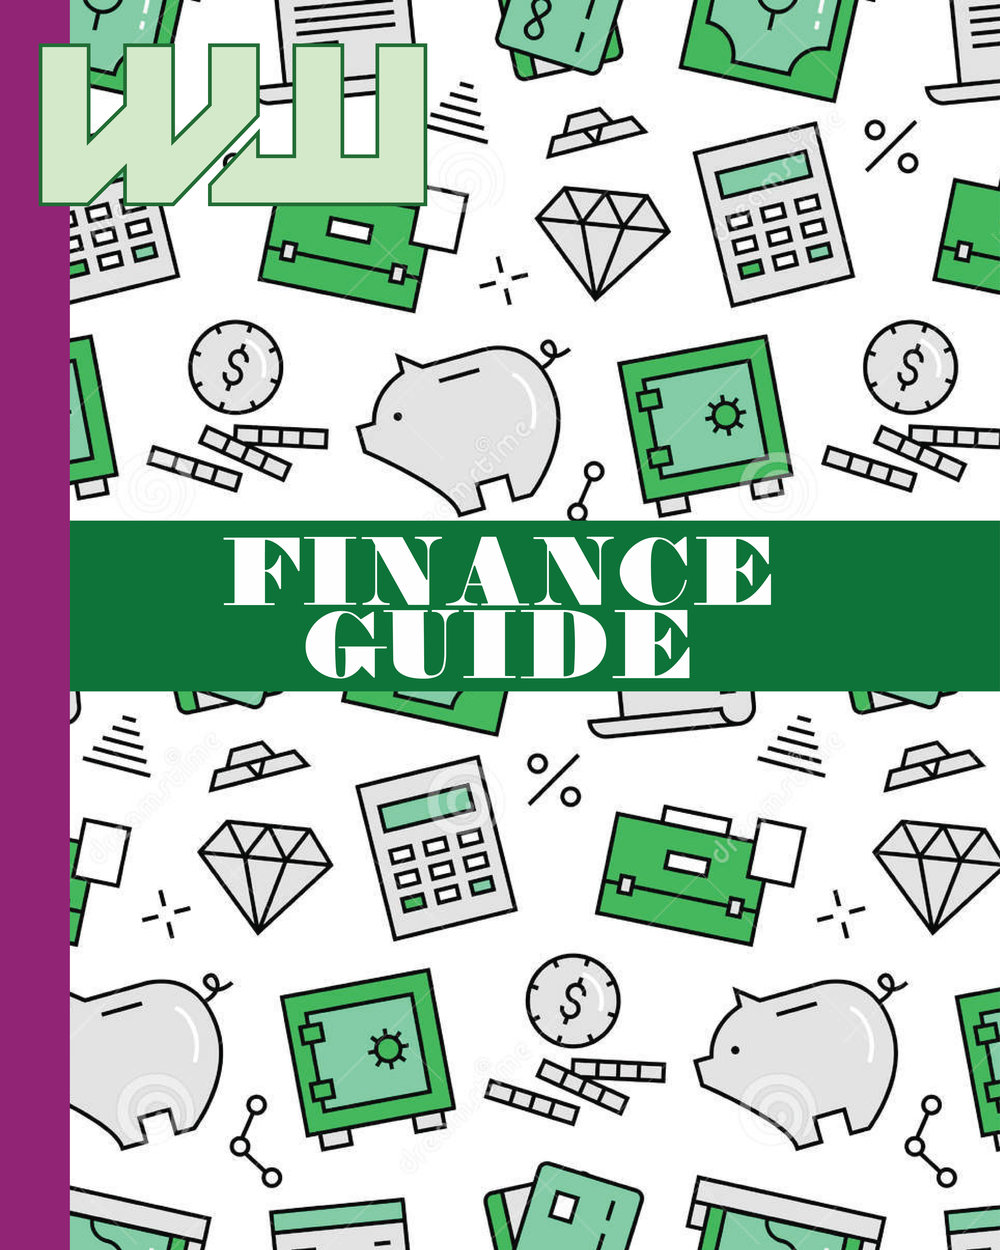 FINANCE GUIDE - Buying a home, financing a car, preparing for a big vacation? This year, we're getting you all you need to know.